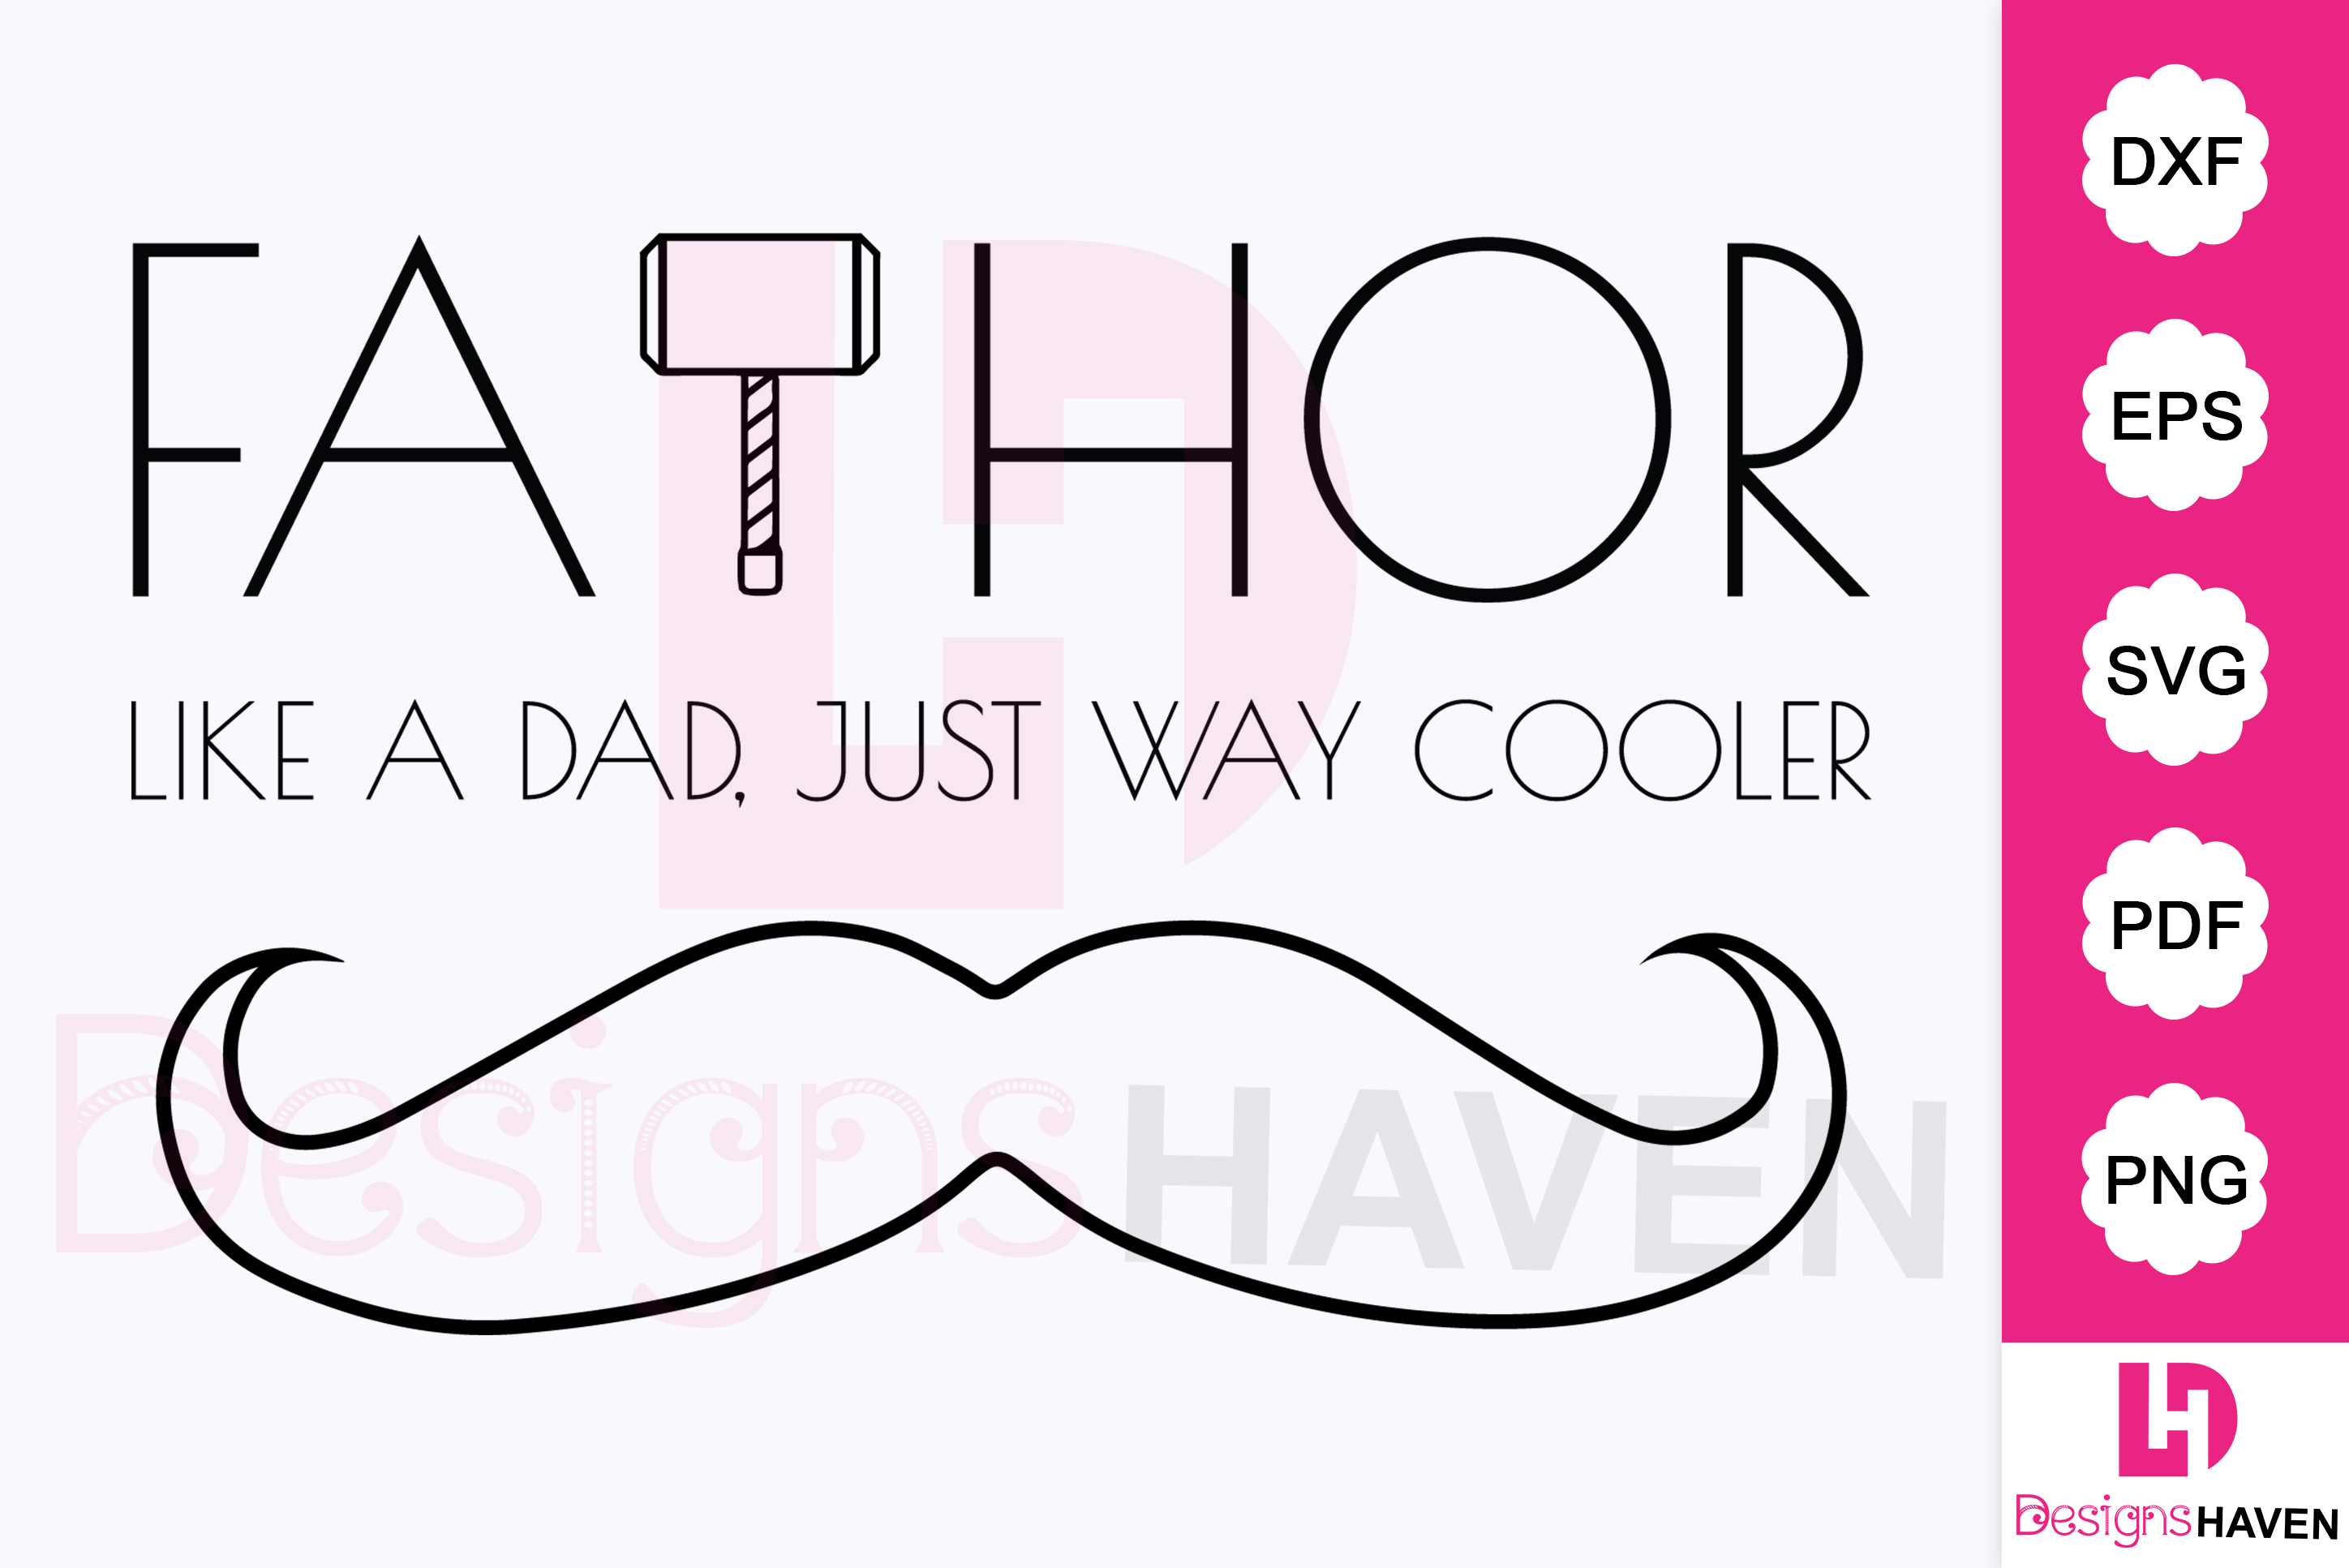 Download Free Fathor Father S Day Silhouette Graphic By Designshavenllc for Cricut Explore, Silhouette and other cutting machines.